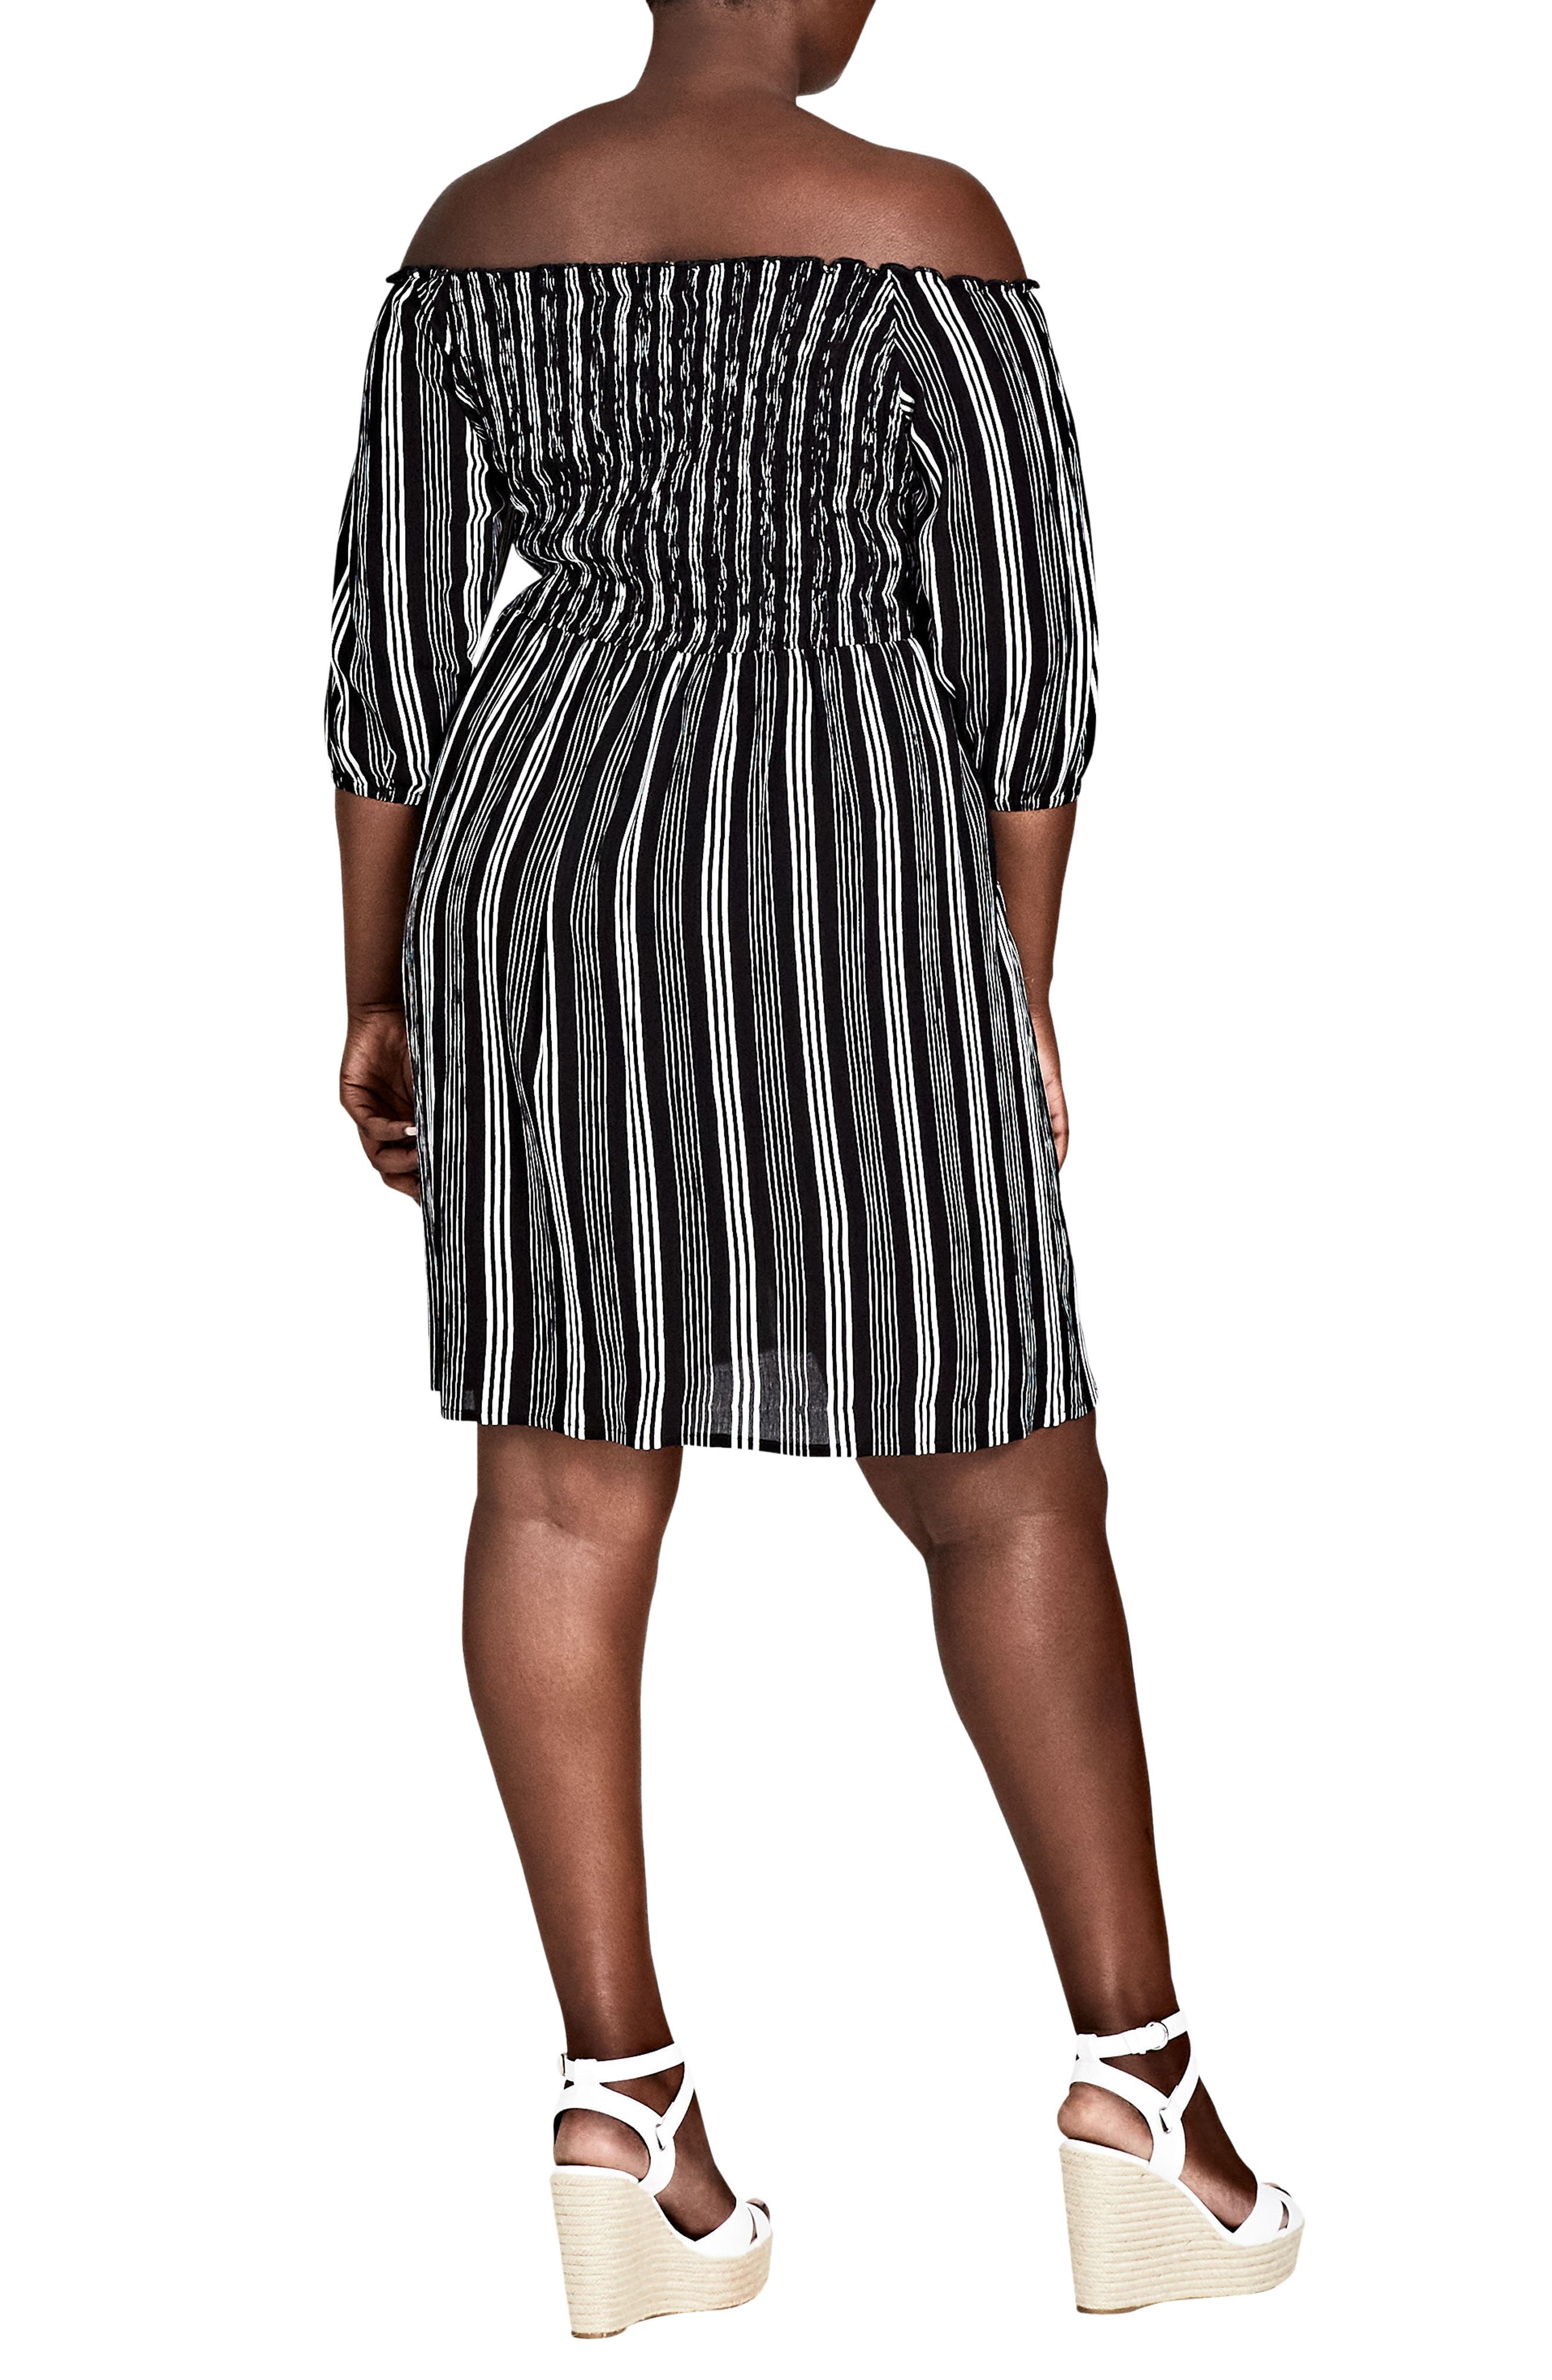 Stripe Play Off the Shoulder Dress,                             Alternate thumbnail 2, color,                             Stripe Play